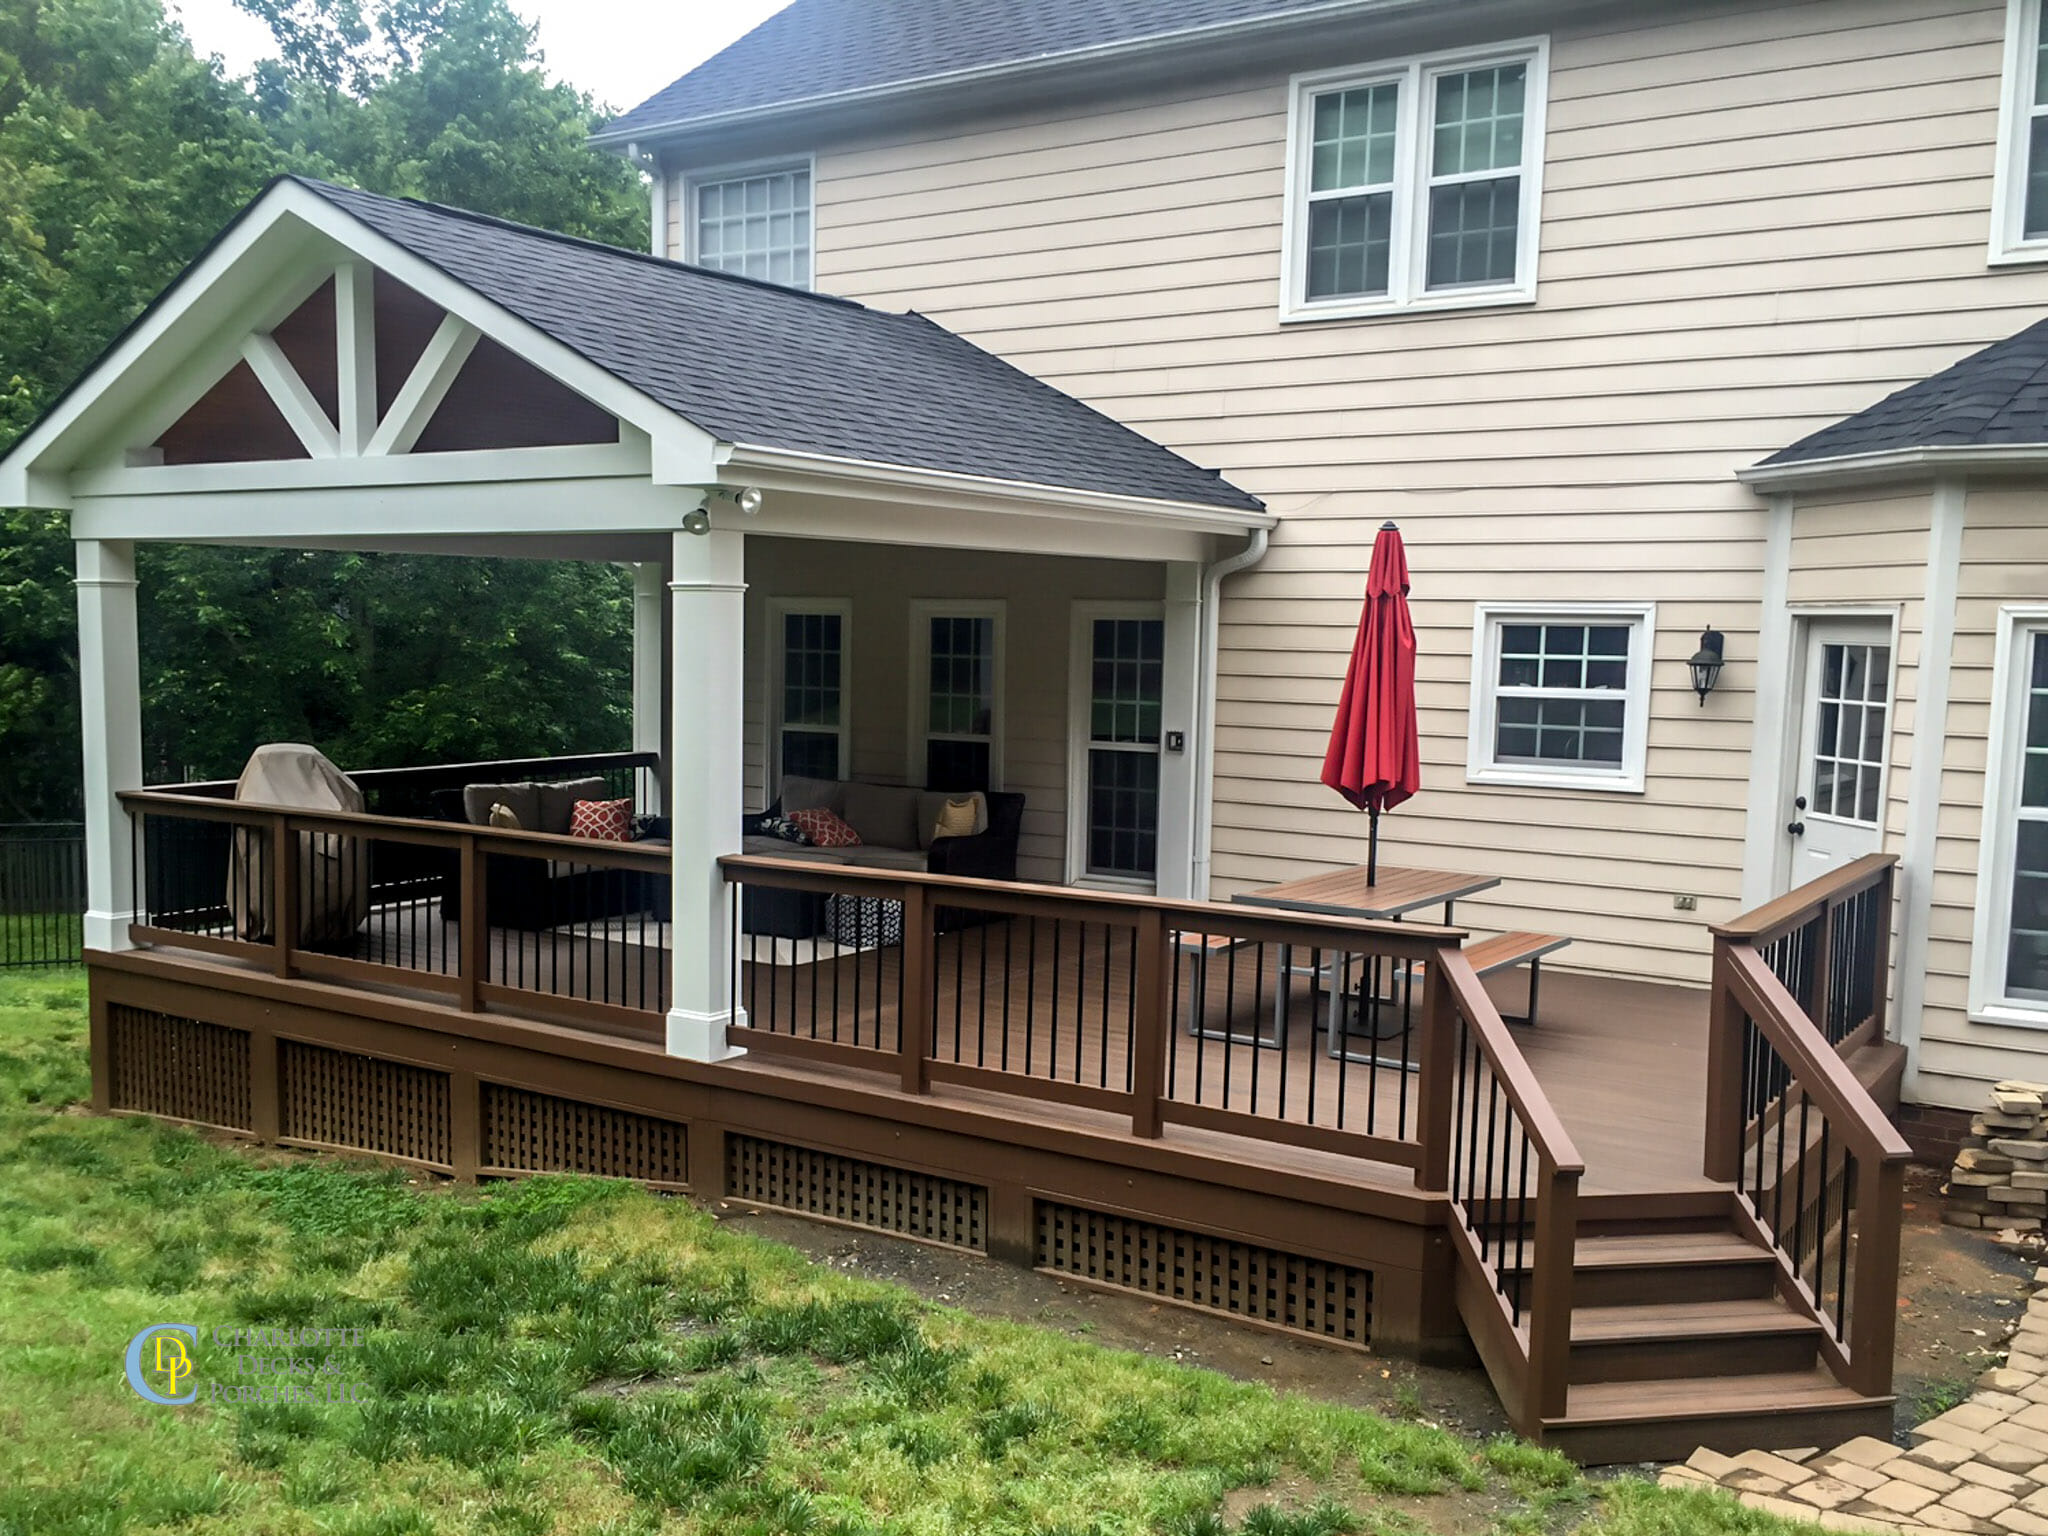 Covered Porch Photos - Charlotte Decks and Porches, LLC on Enclosed Back Deck Ideas id=38656